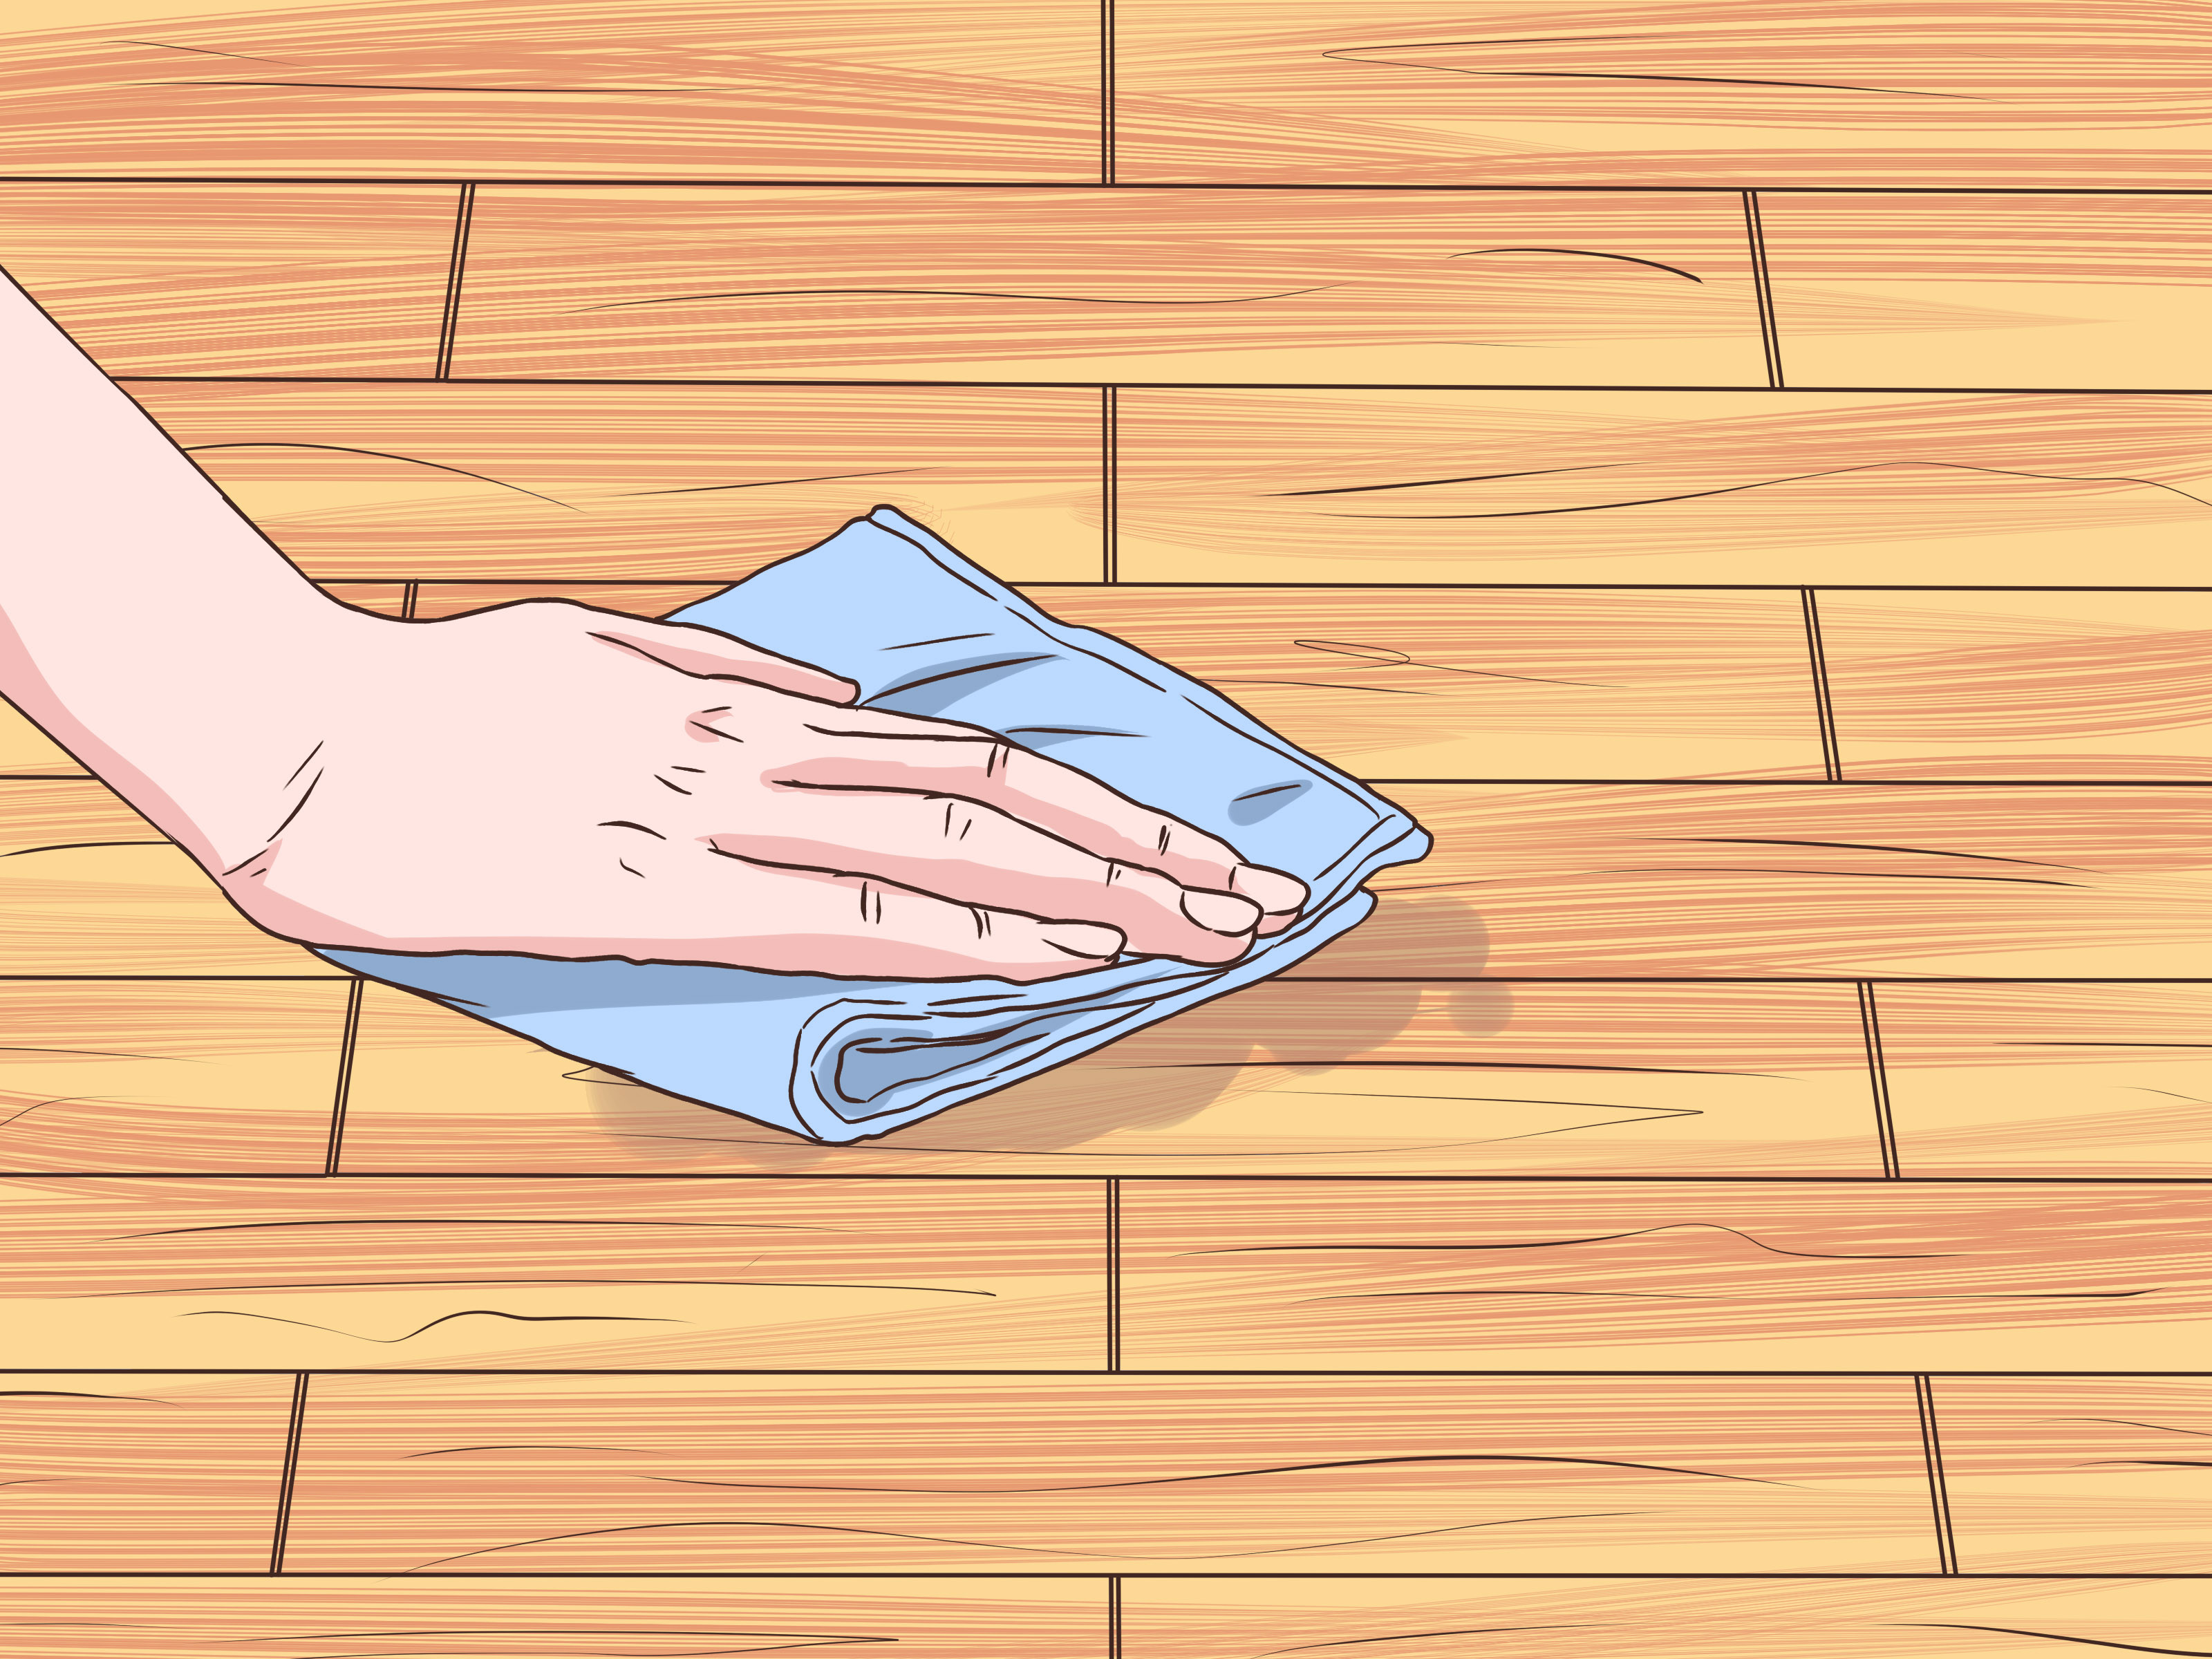 refinishing old hardwood floors diy of how to clean sticky hardwood floors 9 steps with pictures intended for clean sticky hardwood floors step 9